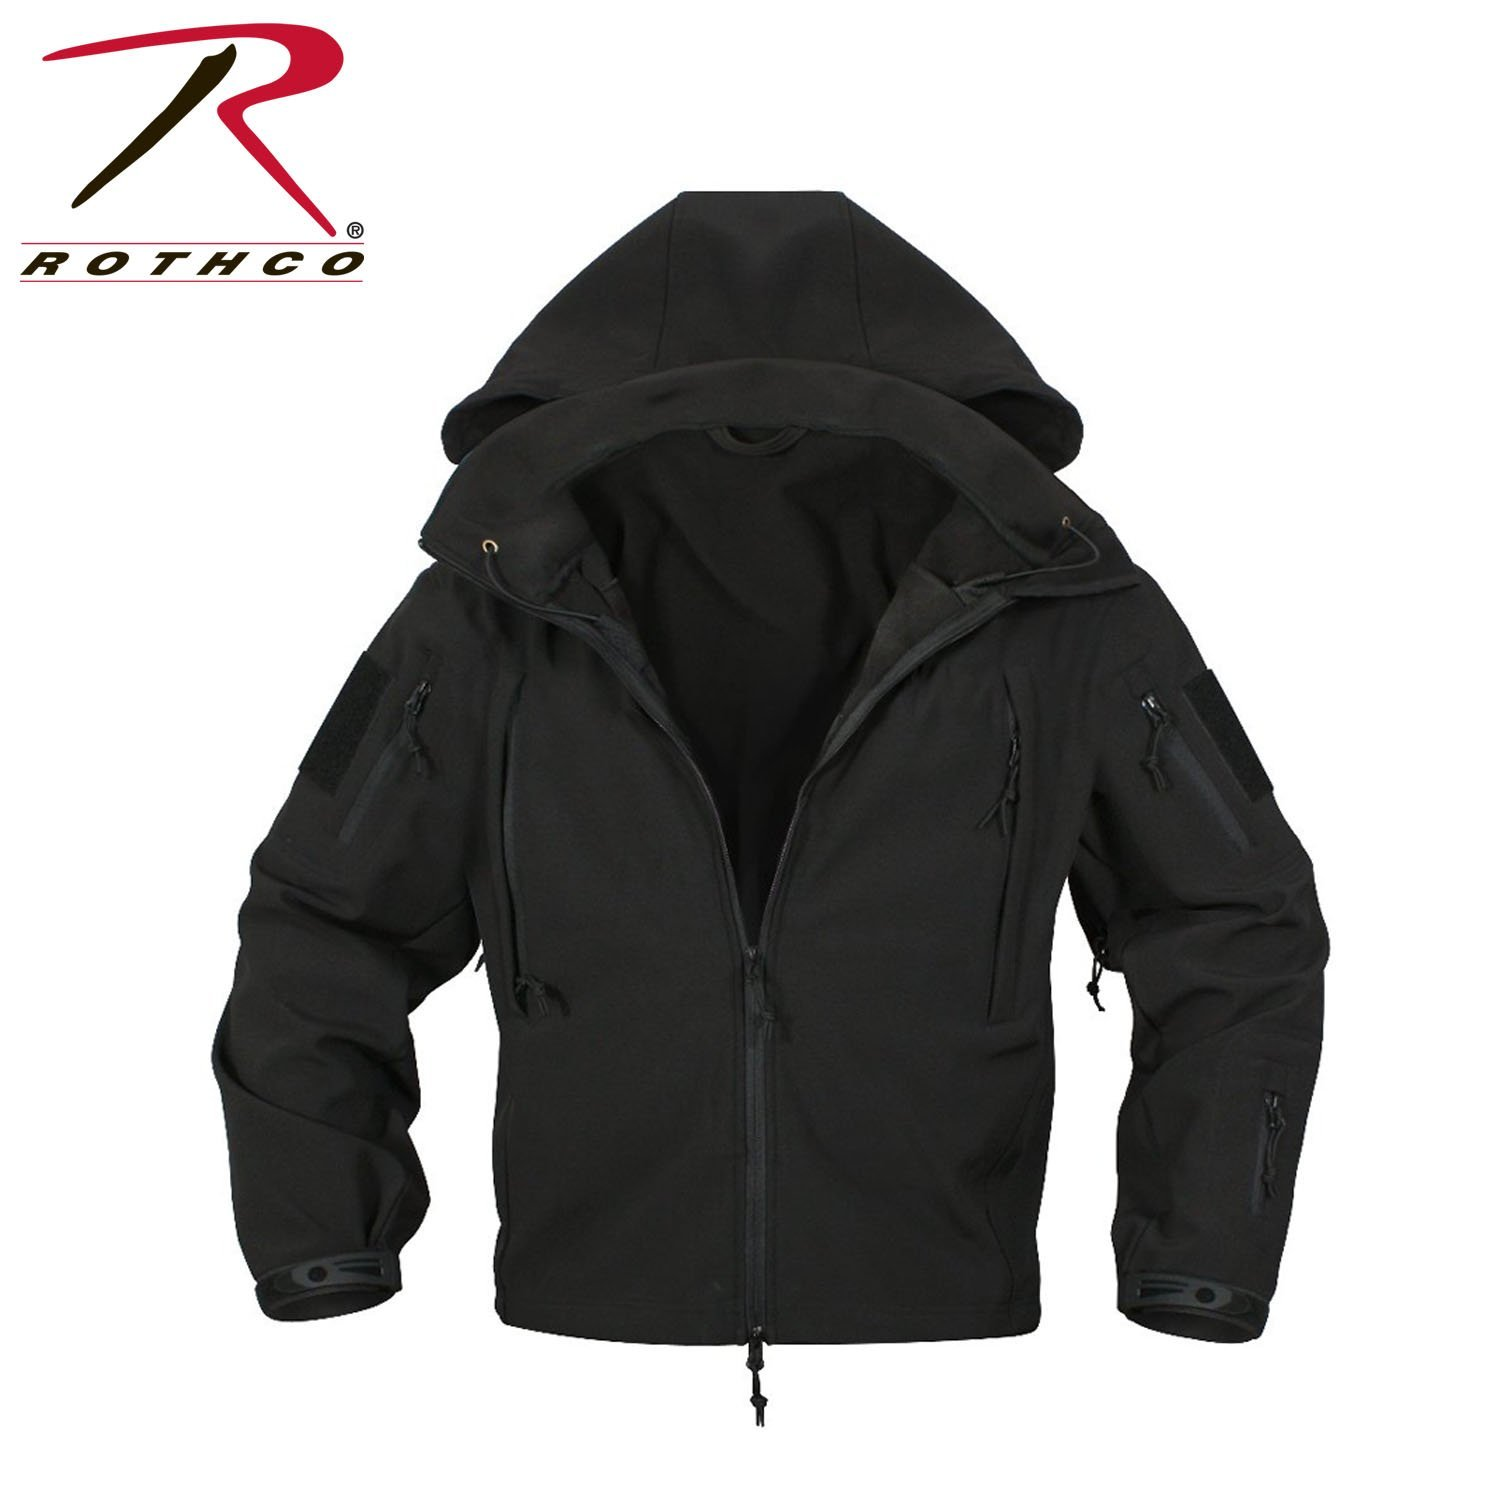 Rothco Special Ops Tactical Soft Shell Jacket - Black, Small